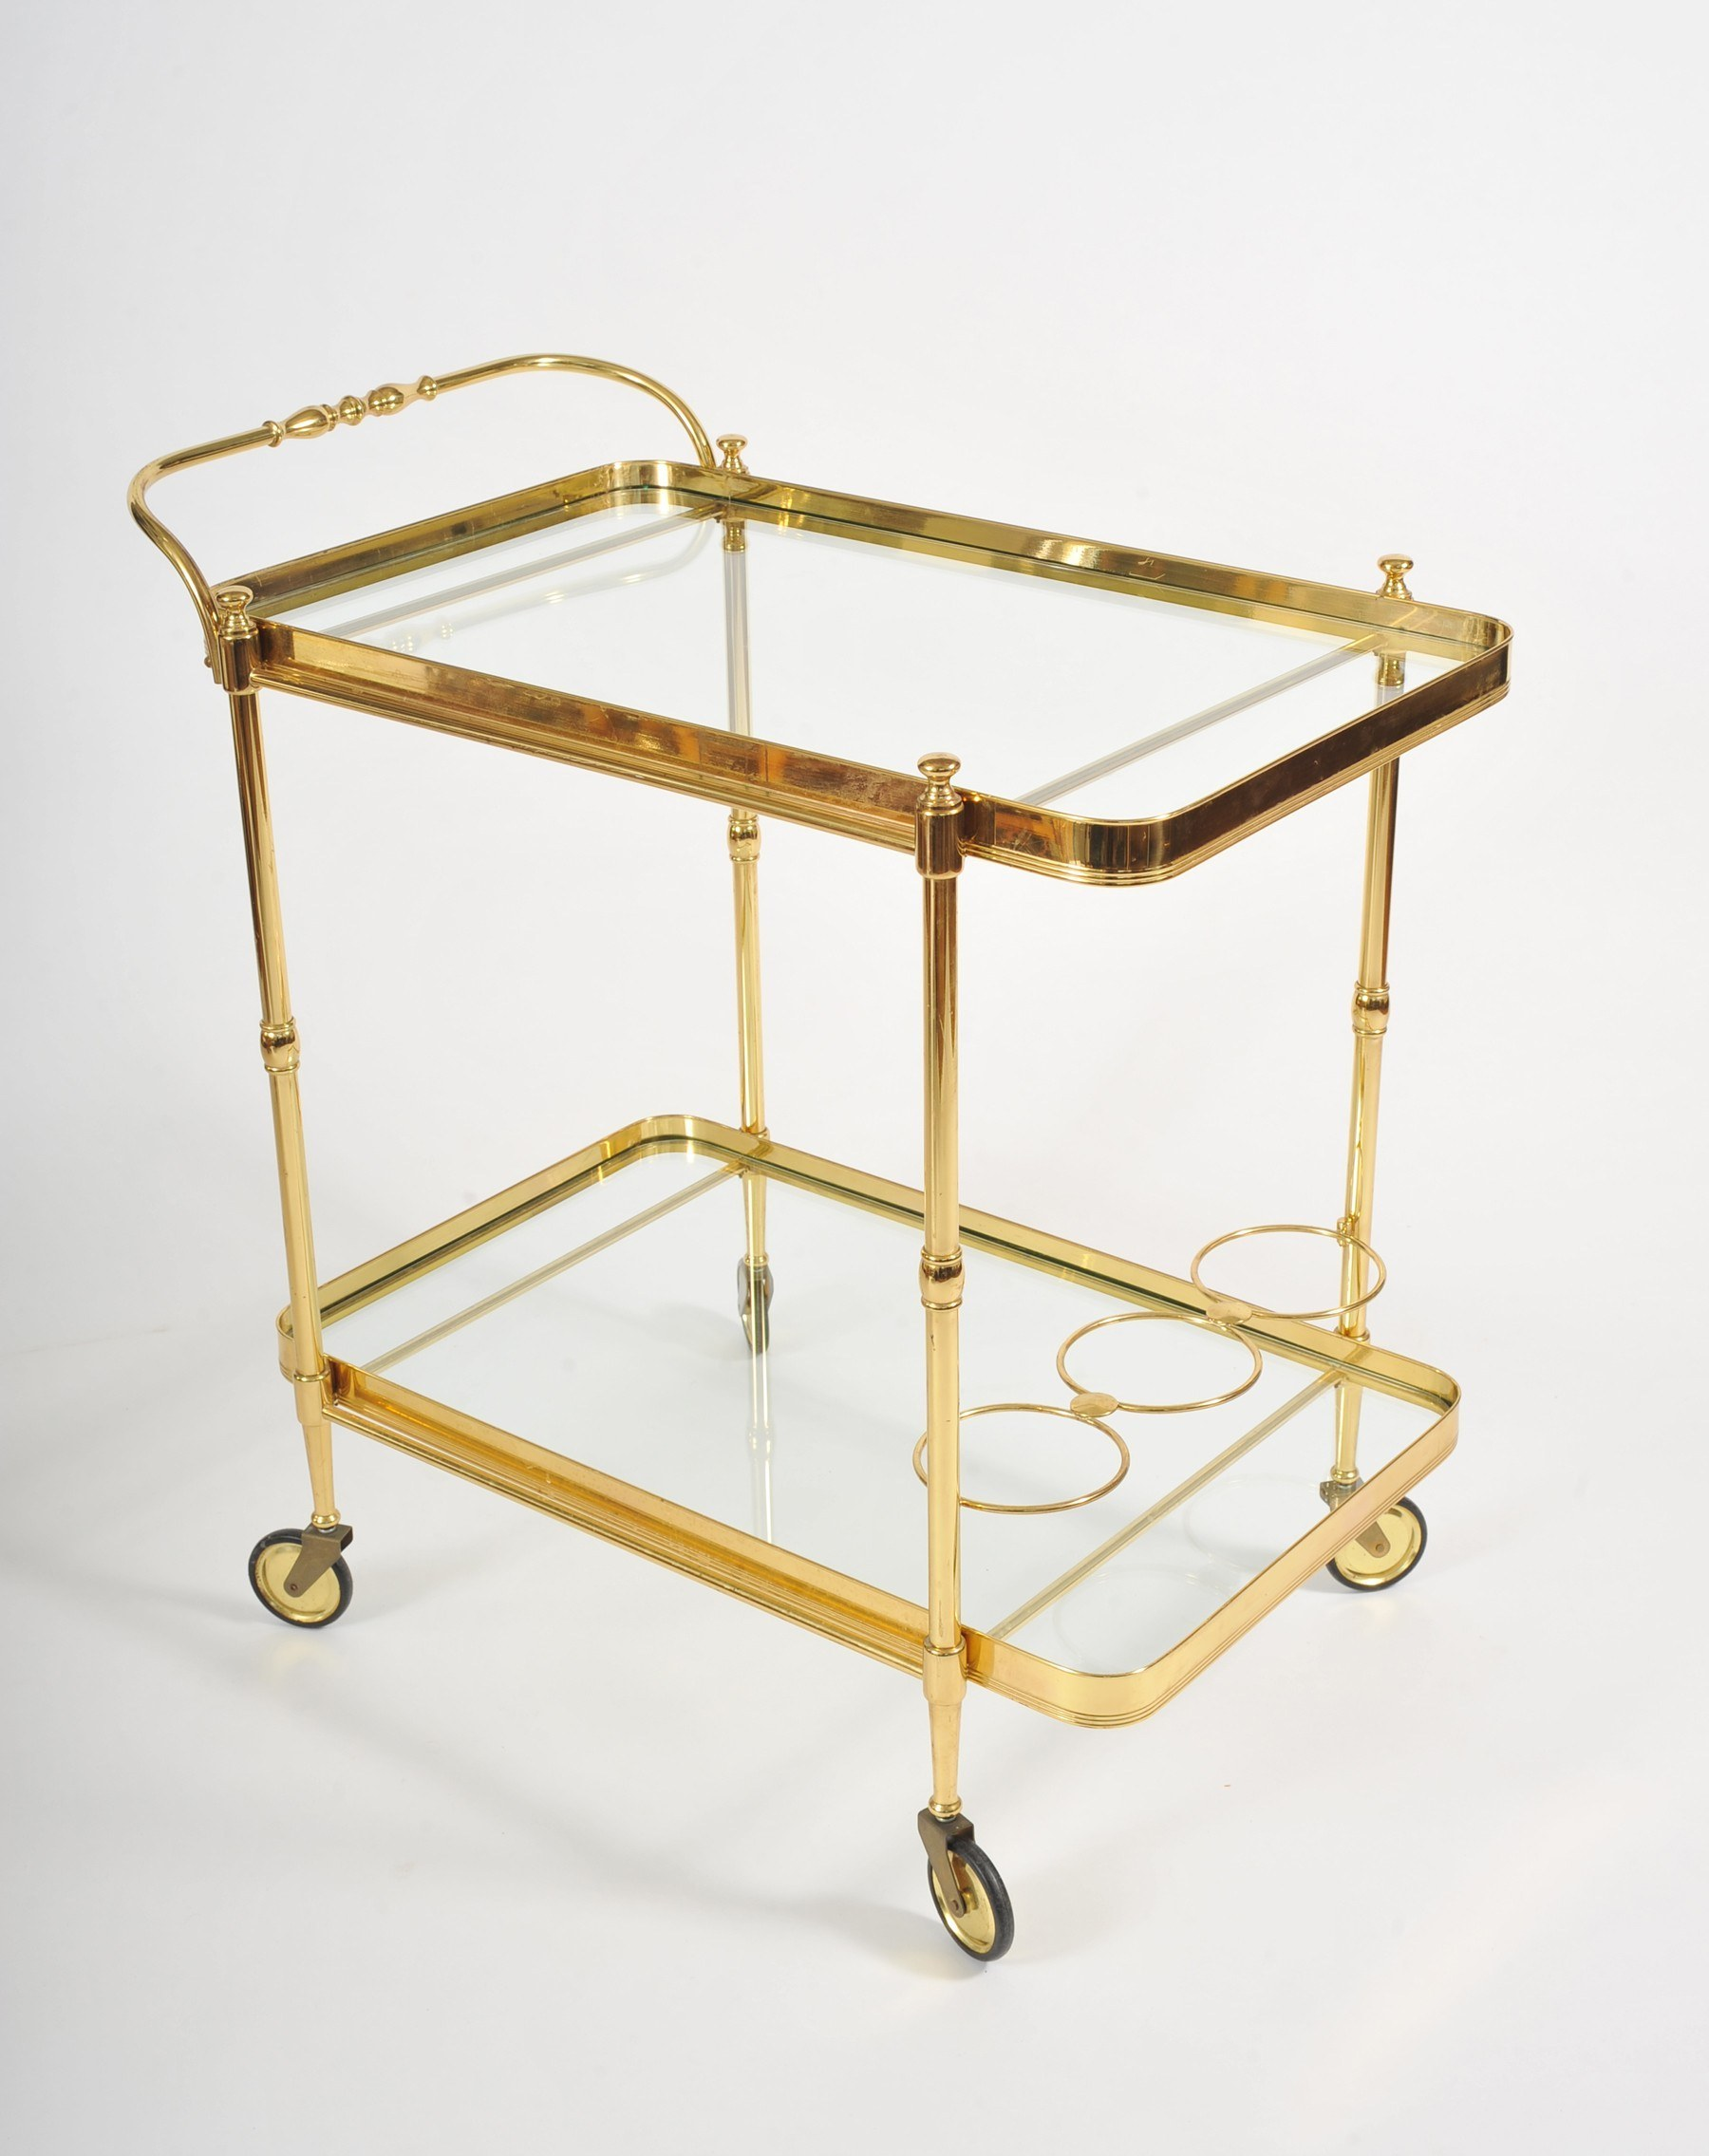 Valerie Wade Ams656 1950S Italian Brass Drinks Trolley 02